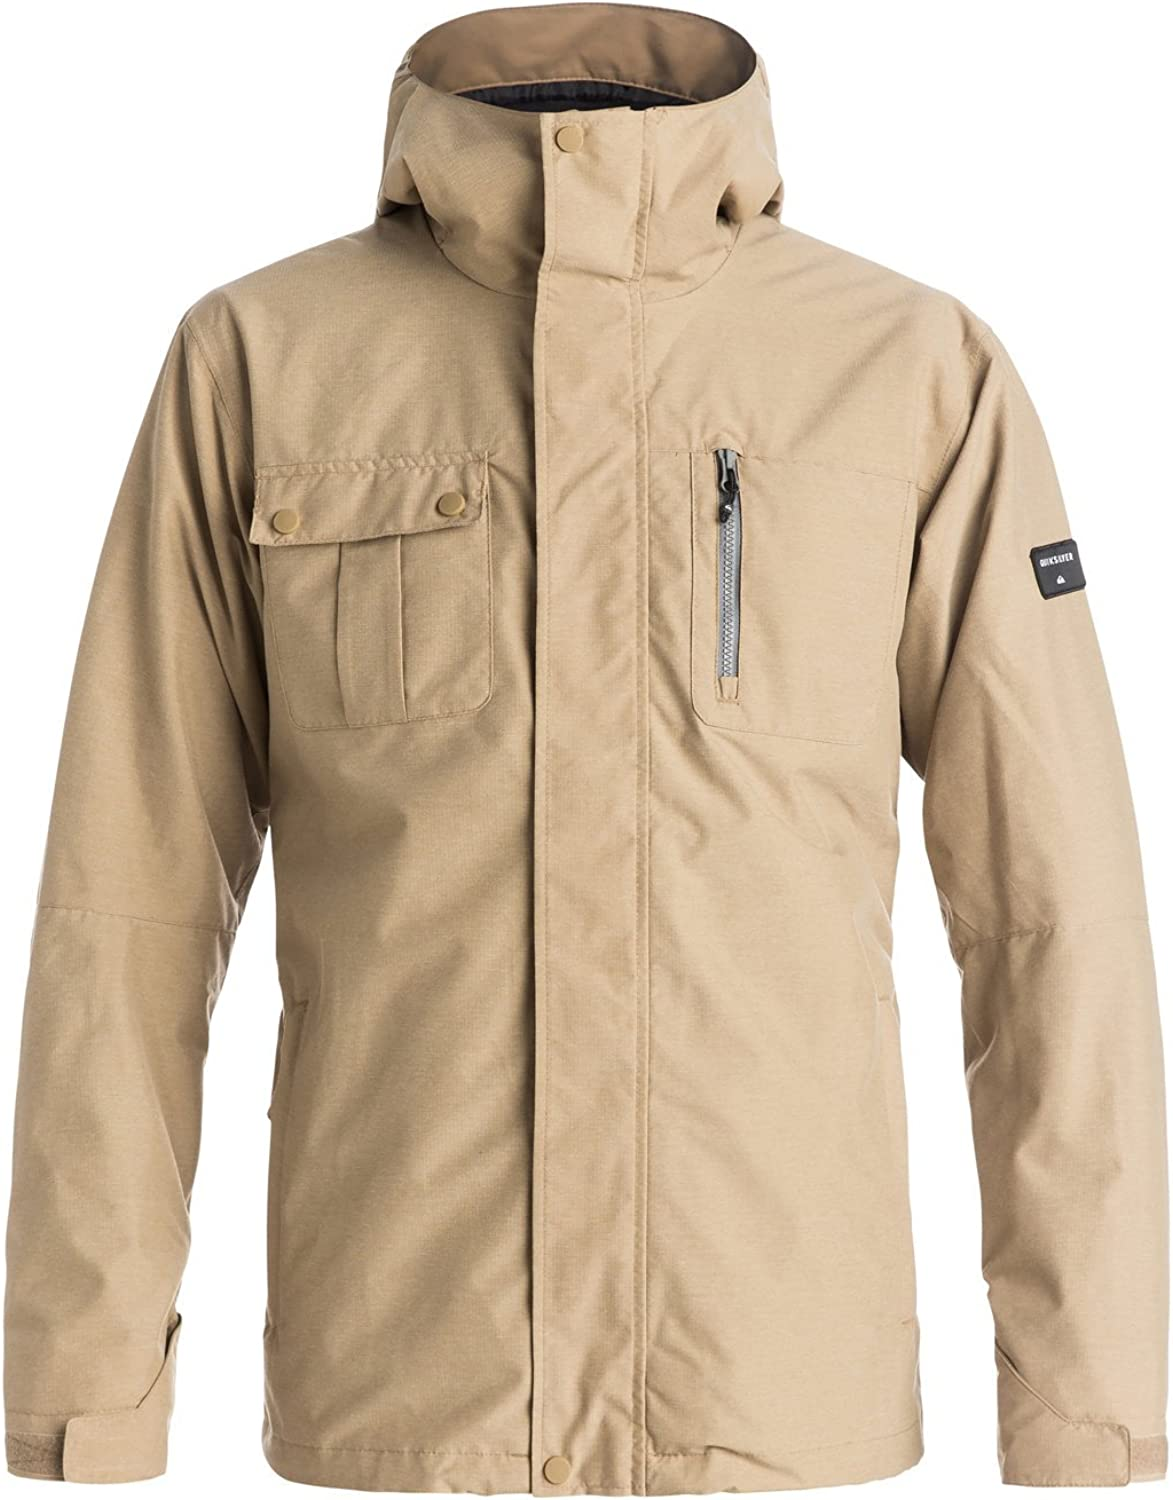 Quiksilver Men's Mission Award 3 in Weekly update 1 Jacket with Bonded Ski Snowboard